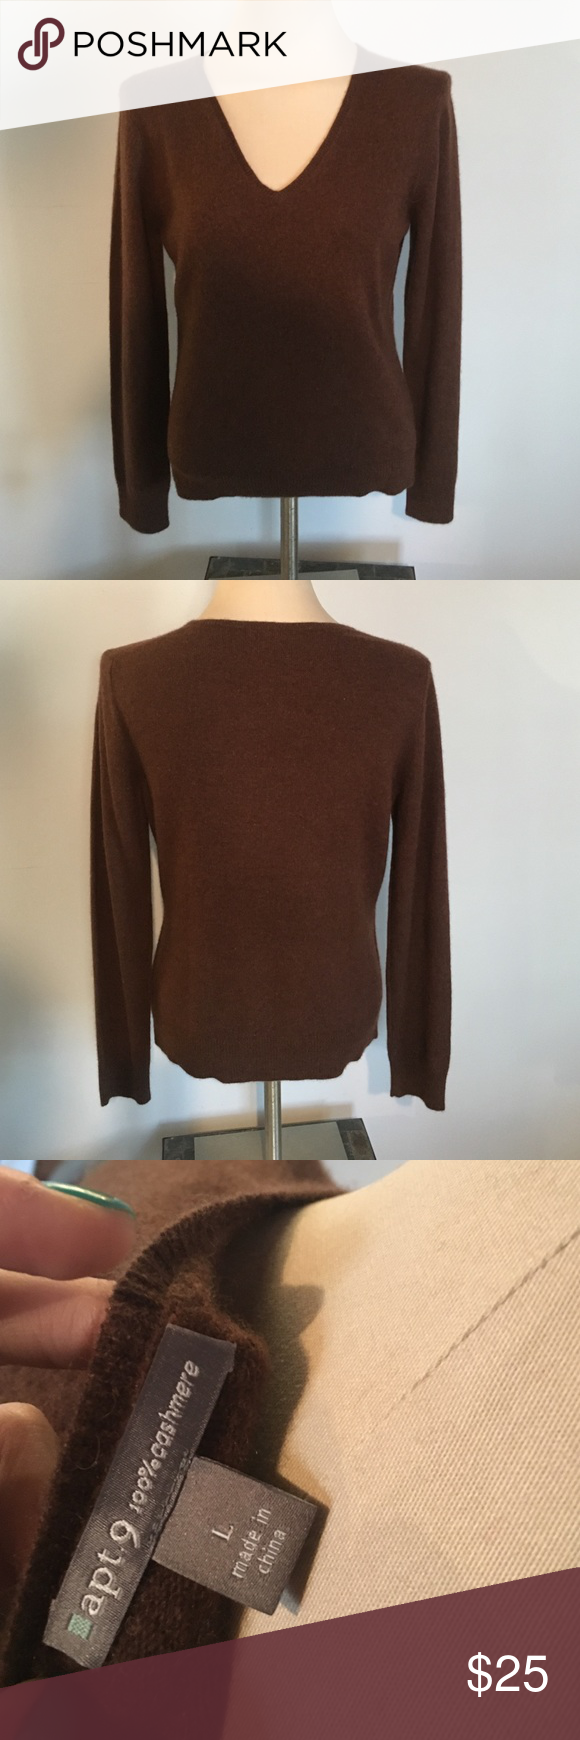 Apt 9 Brown 100% Cashmere Sweater Size Large Beautiful brown v-neck 100% cashmere sweater from Apt 9. Worn once. In like new condition! Apt. 9 Sweaters V-Necks